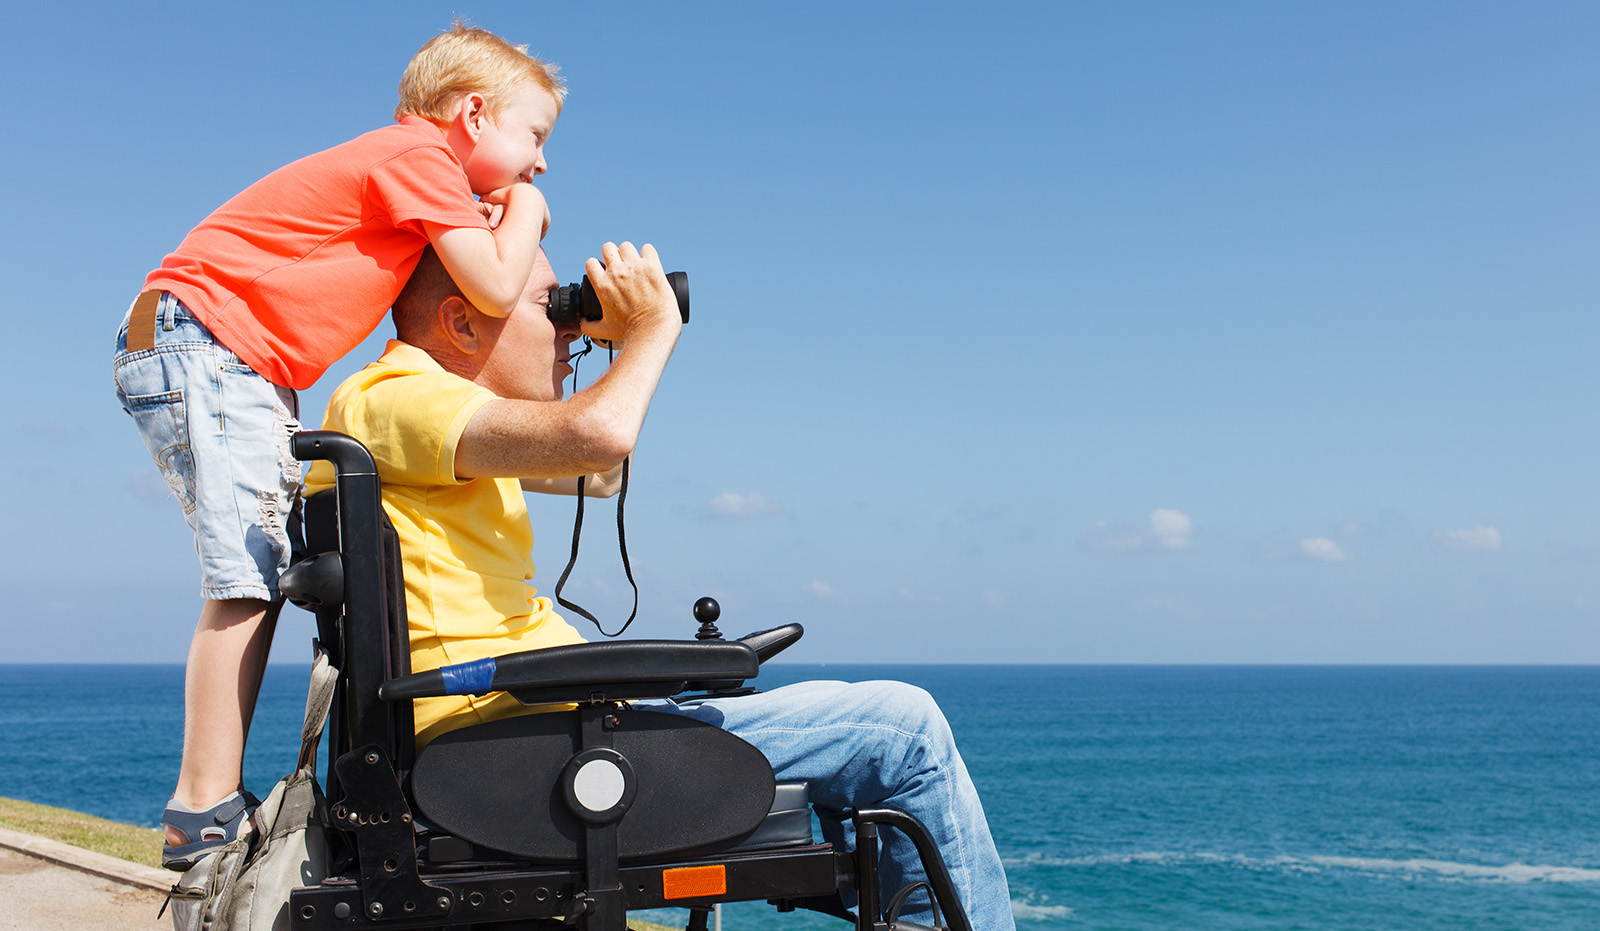 Disabled father looking through binoculars while his young boy is on the back of his wheelchair